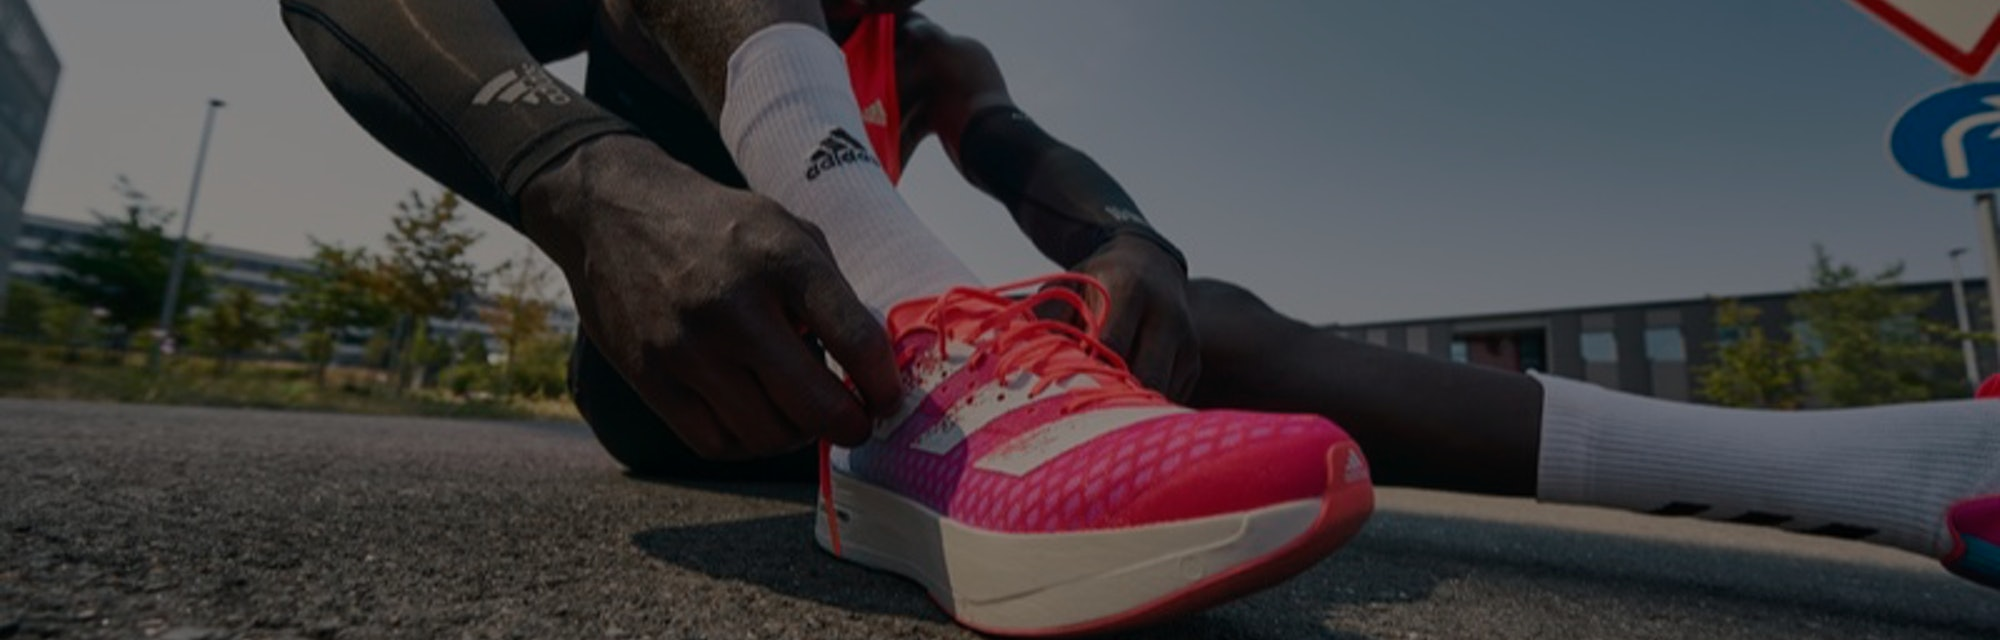 "Adidas Adizero Adios Pro ""Dream Mile"""